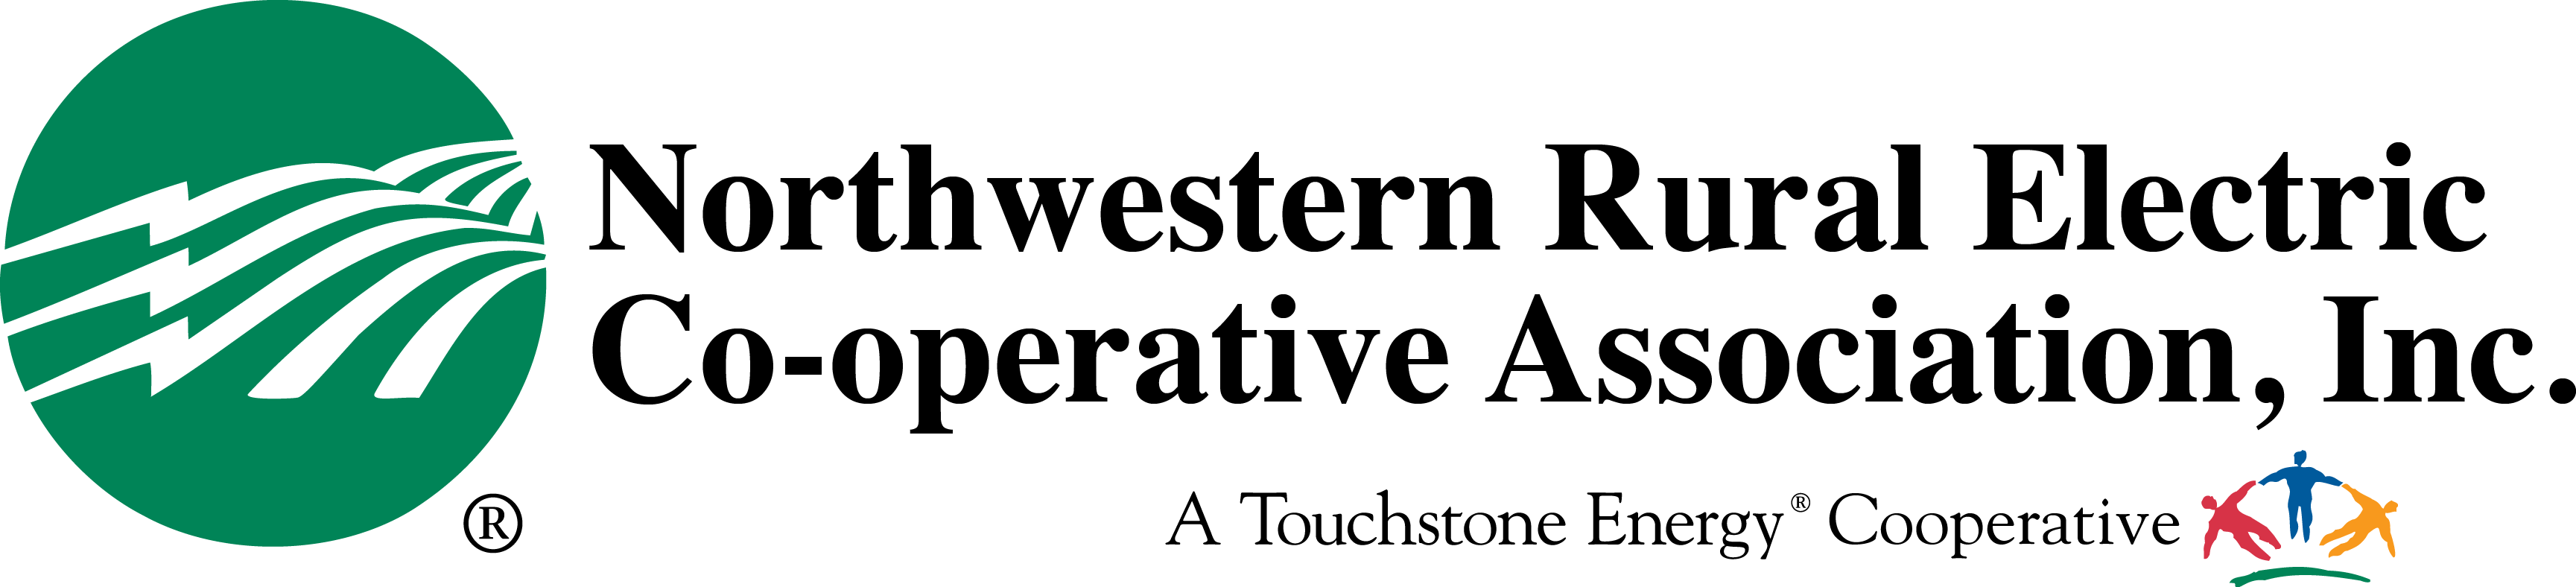 Northwestern Rural Electric Co-operative Association